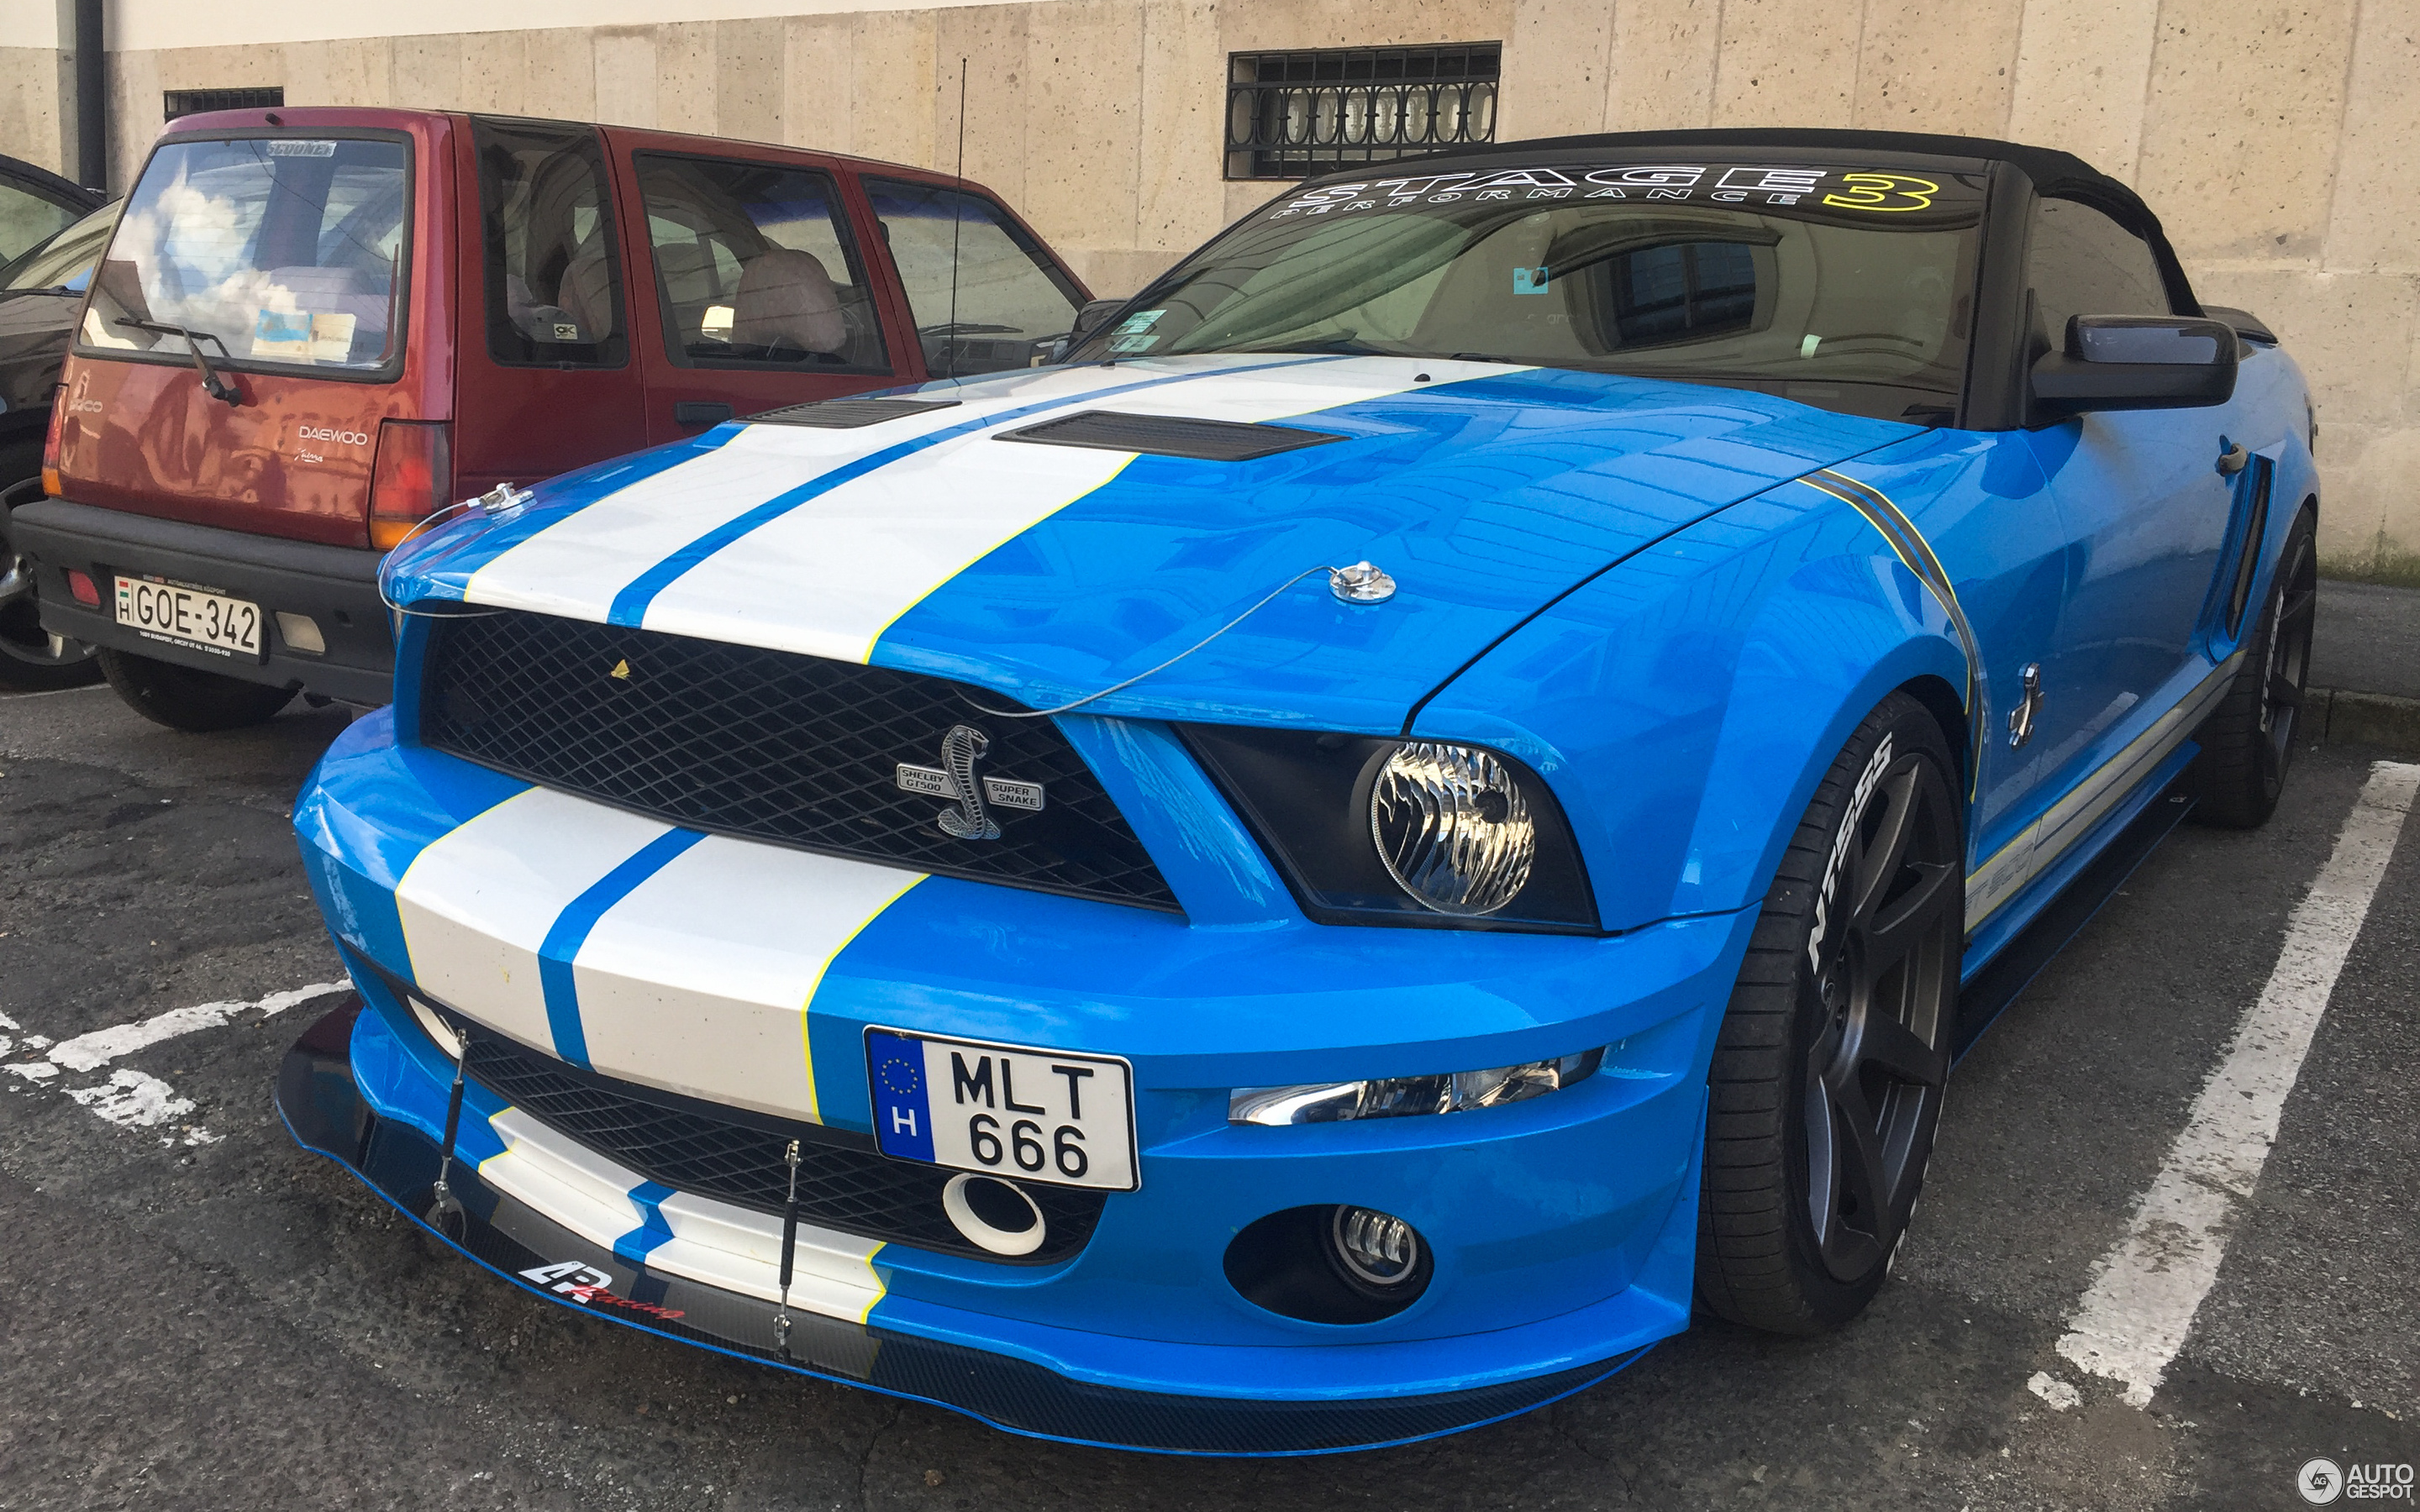 2015 Mustang Rims >> Ford Mustang Stage 3 AP Racing Shelby GT500 Convertible